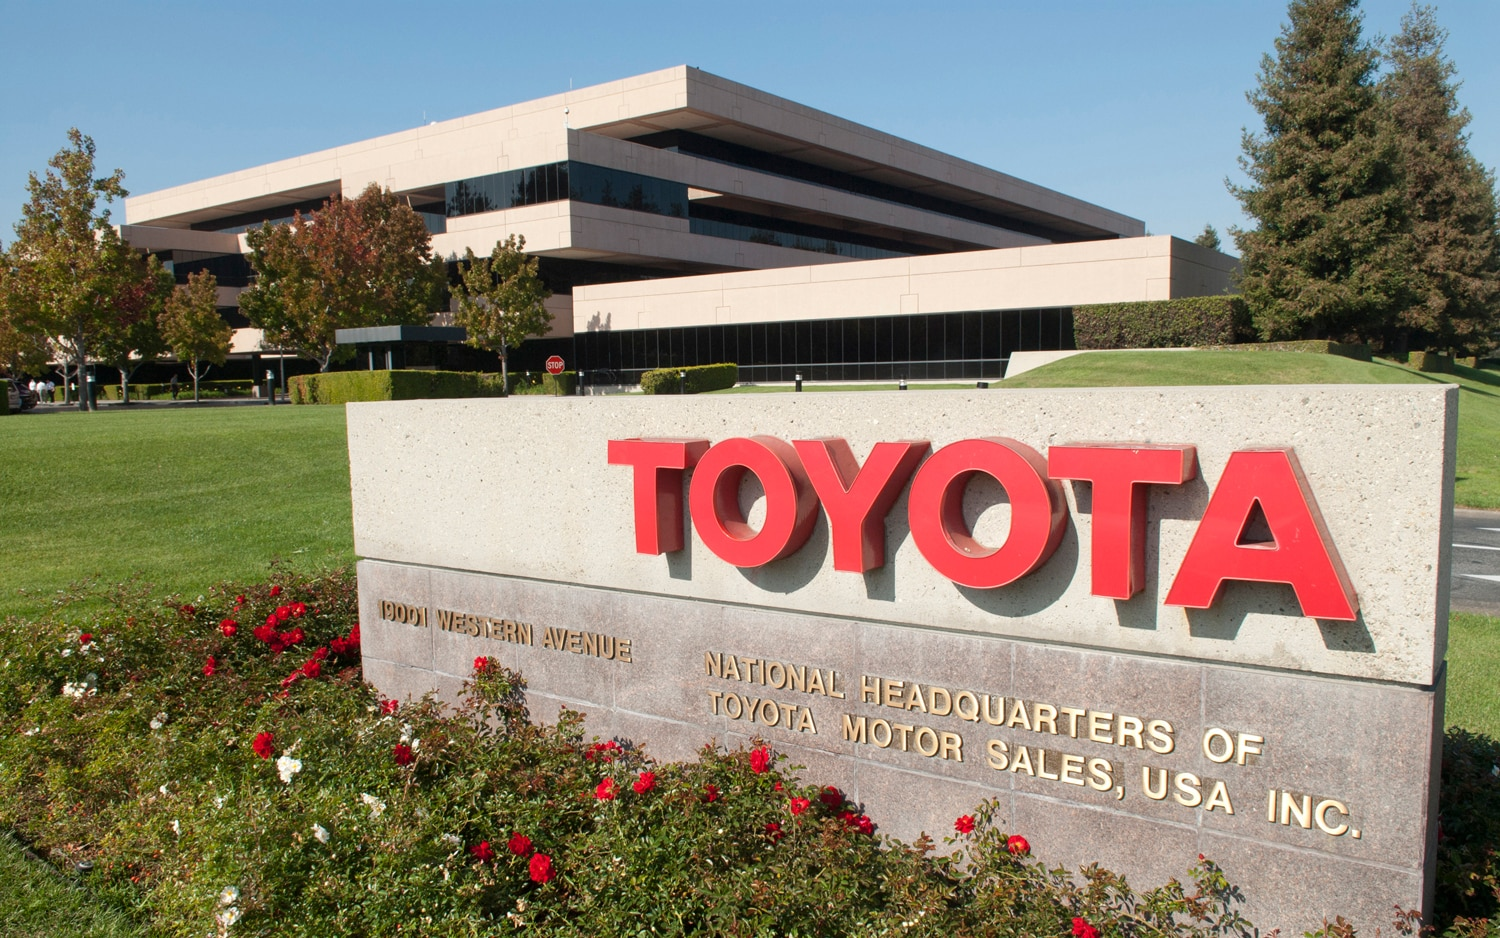 Toyota Motor Sales North America Headquarters1